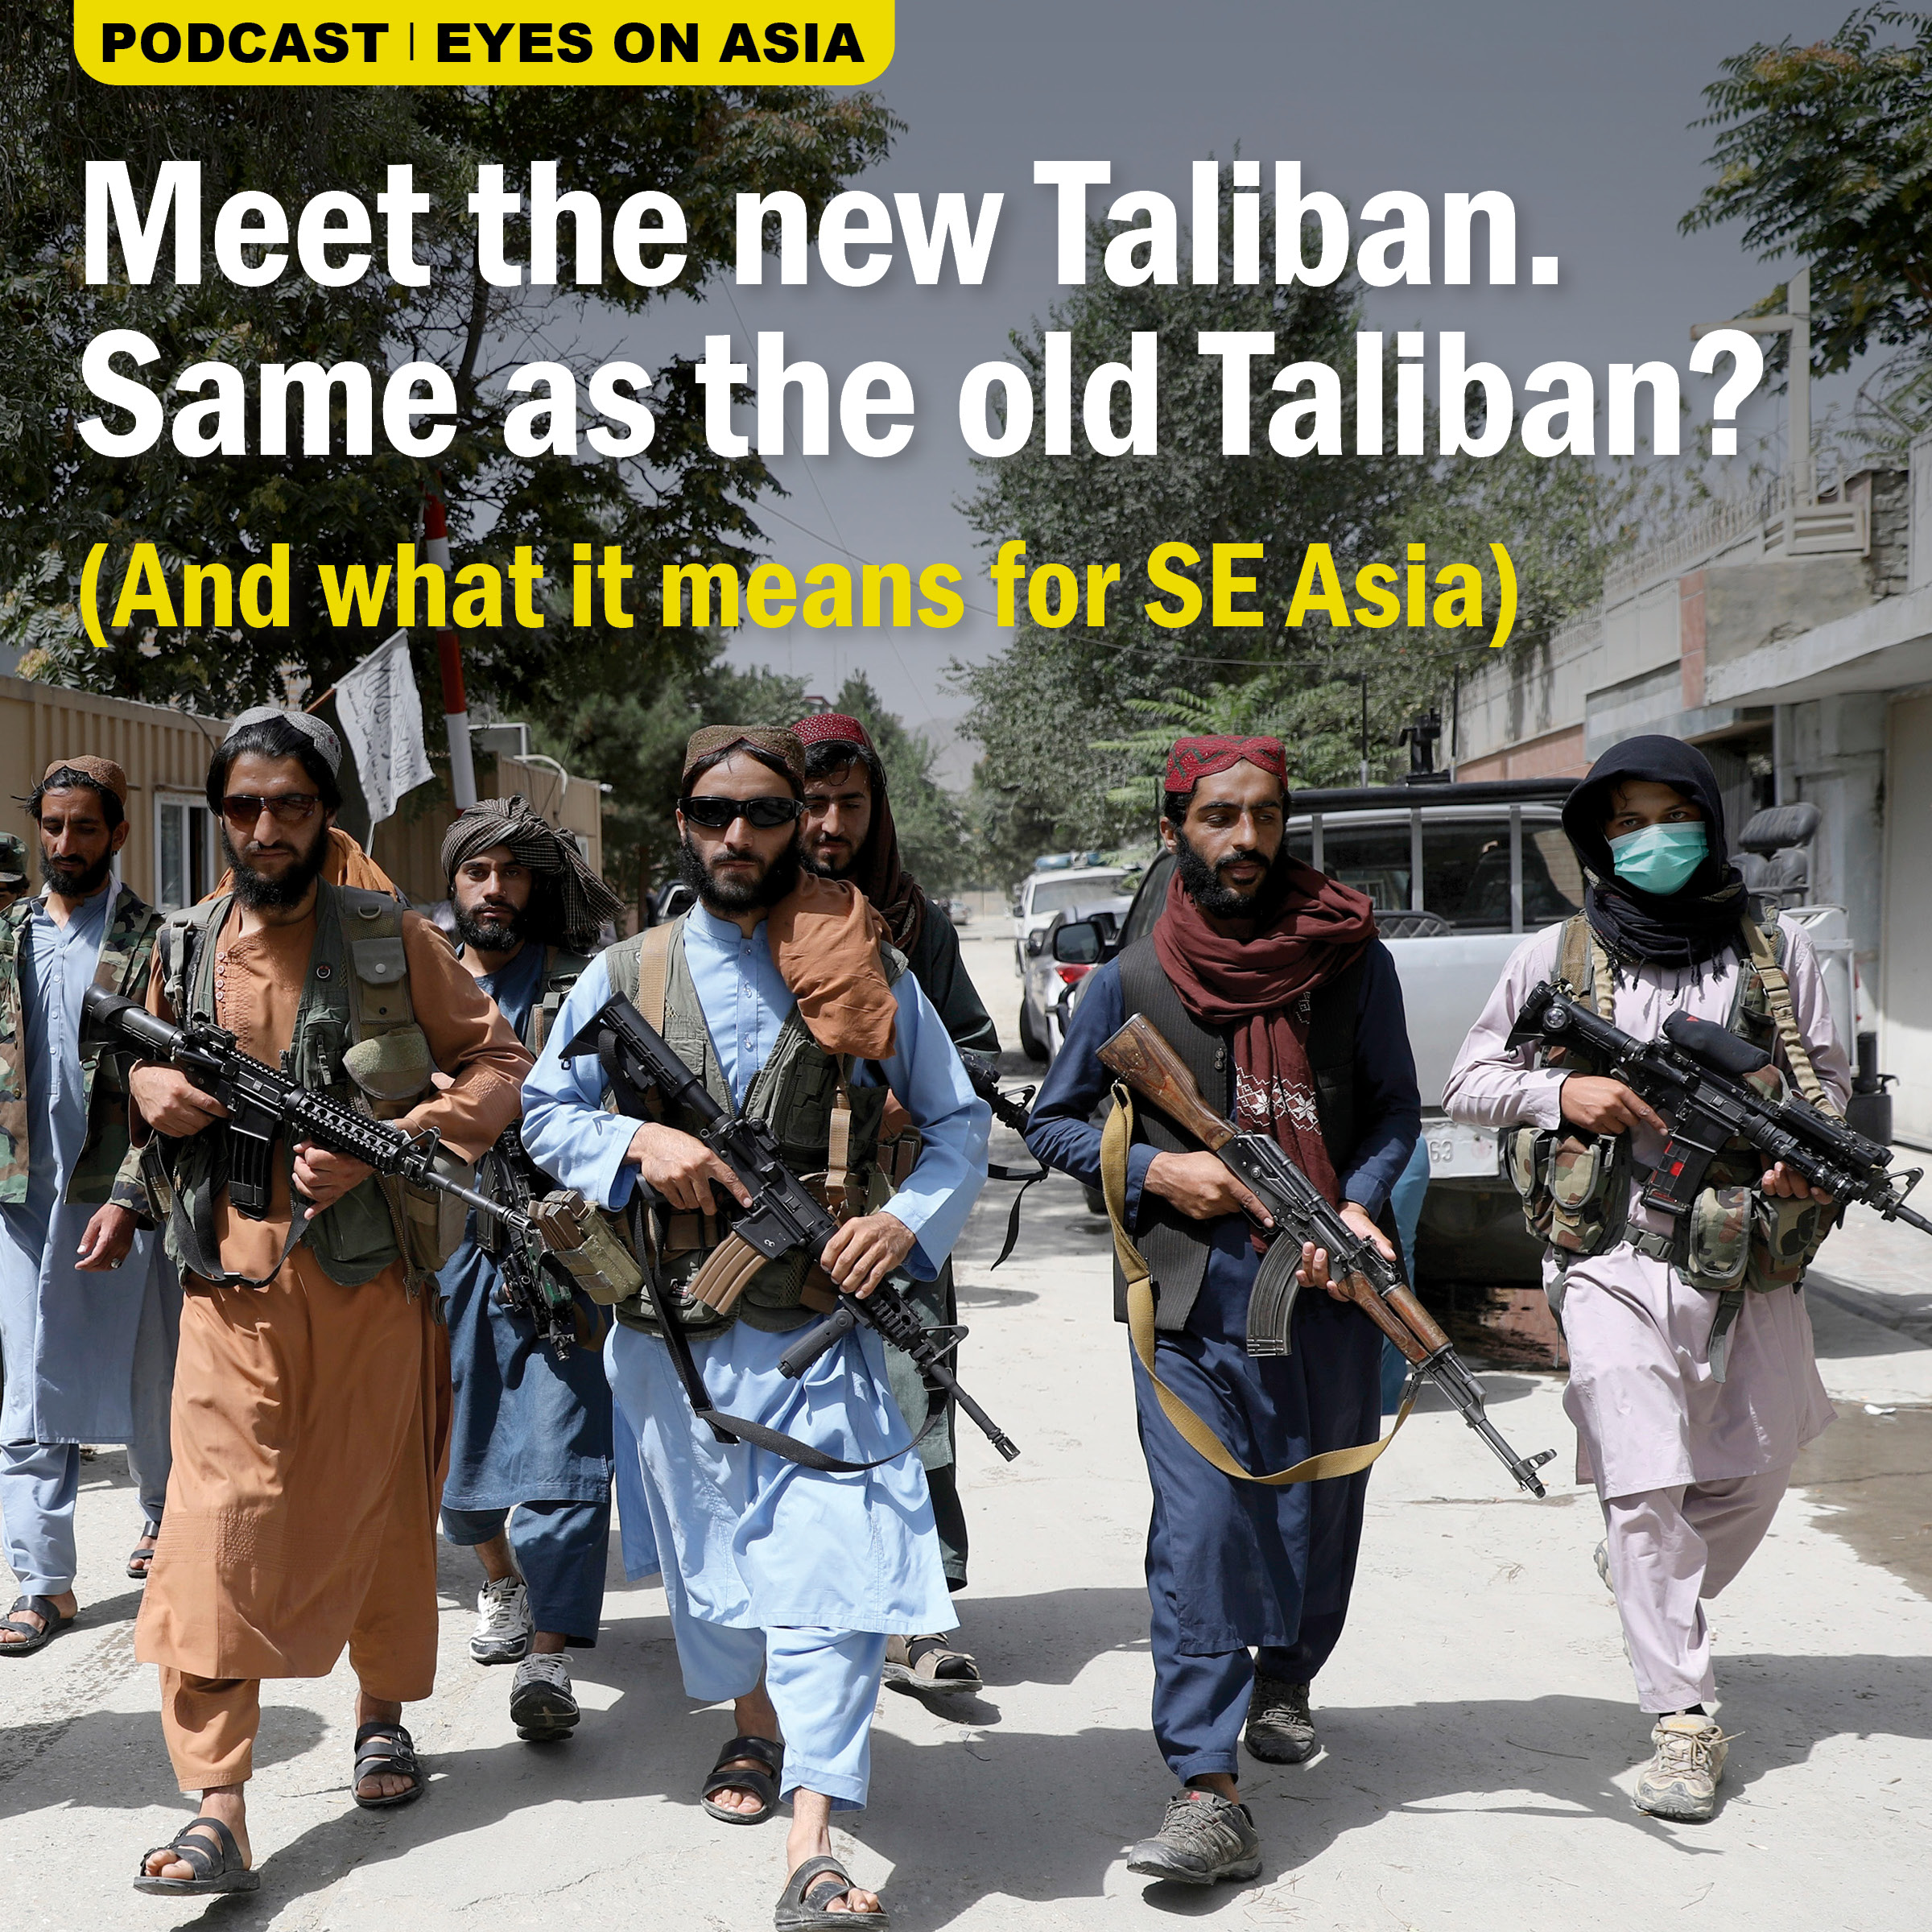 EP036: Will the Taliban takeover in Afghanistan revitalize terror groups in SE Asia?